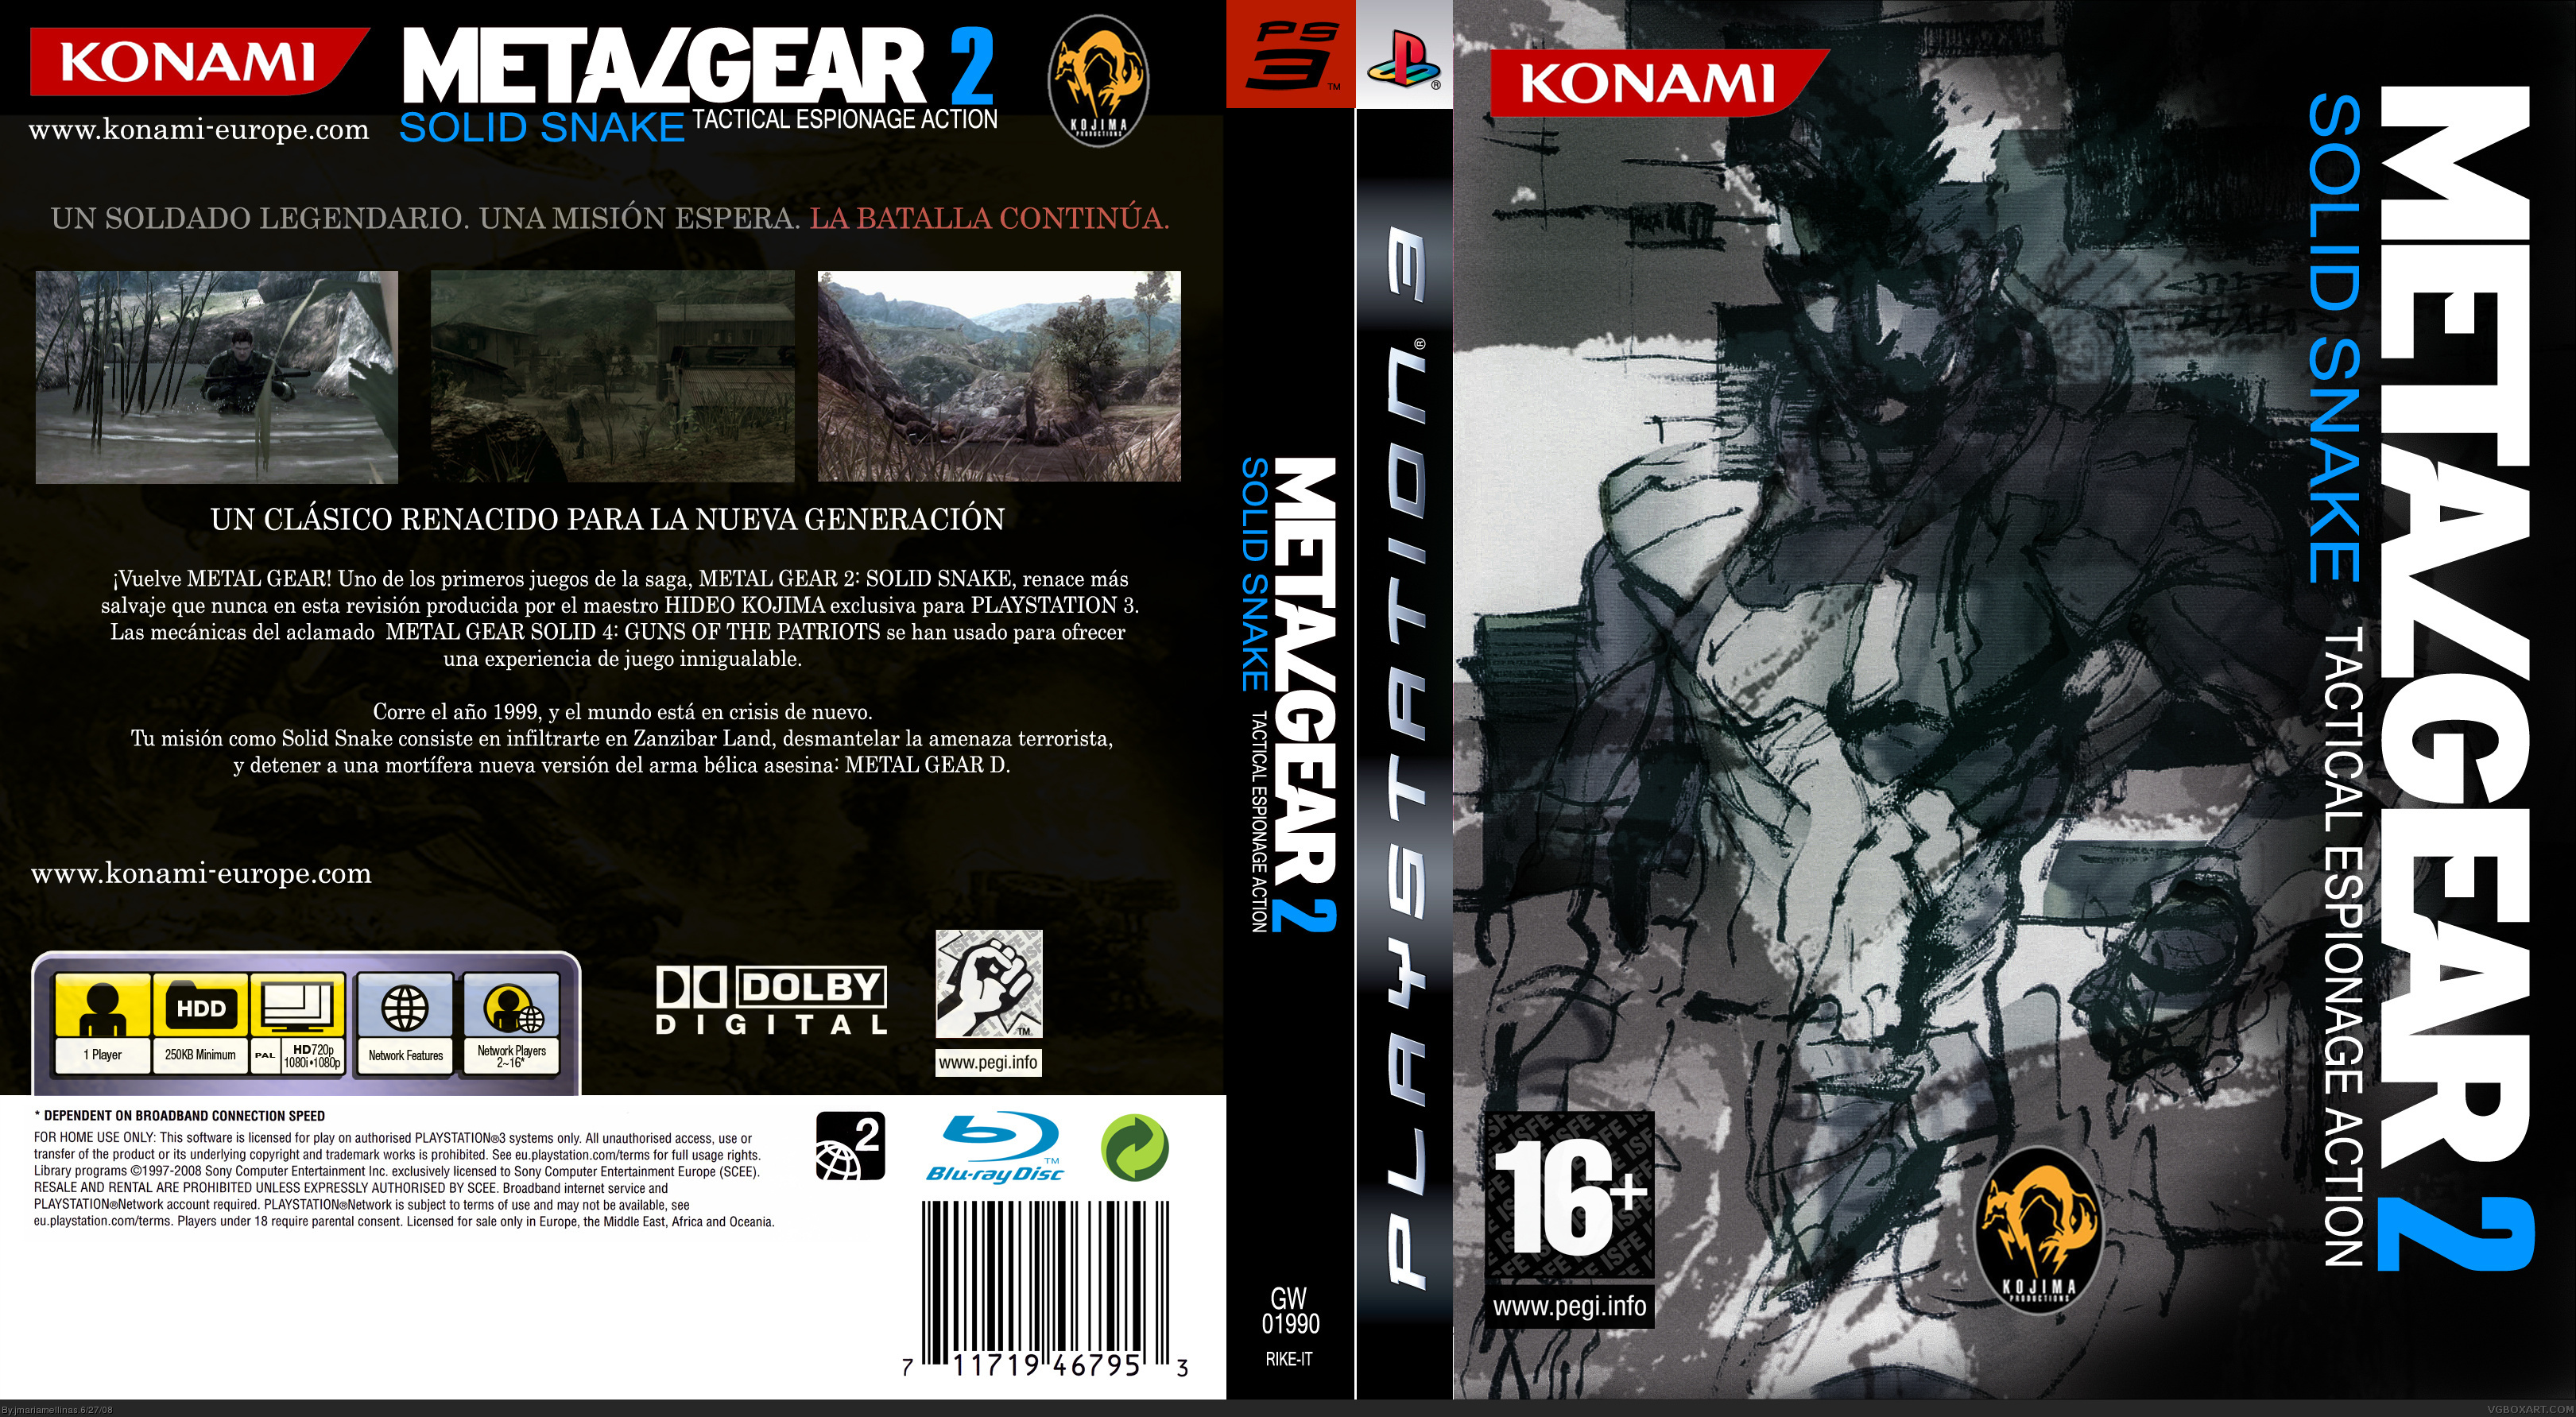 Metal Gear 2 Solid Snake Playstation 3 Box Art Cover By